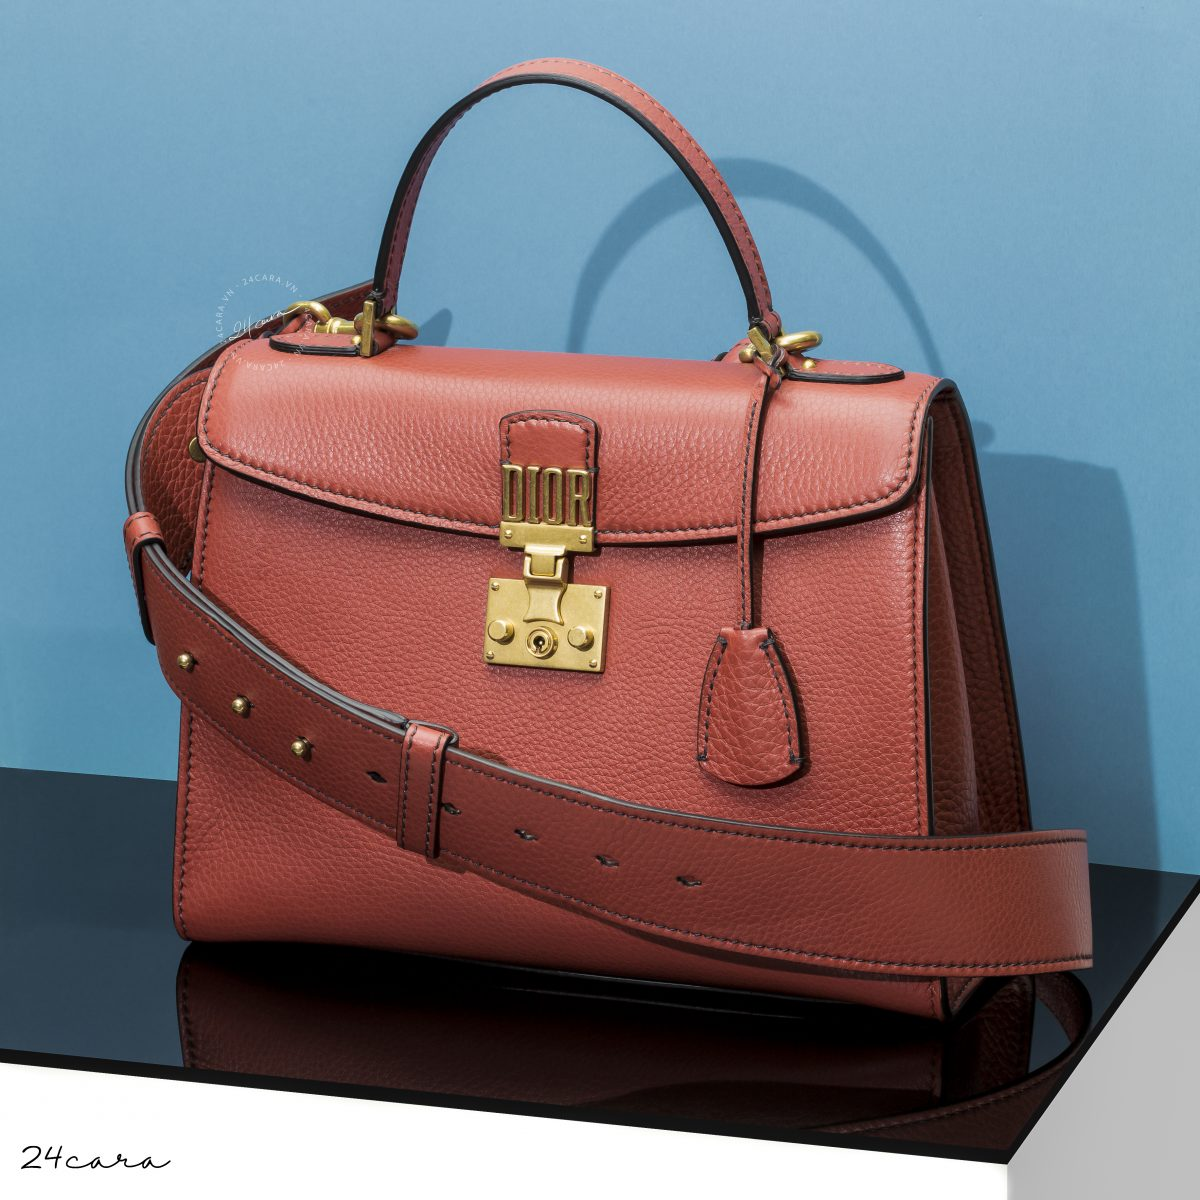 DIORADDICT BAG IN ORANGE GRAINED CALFSKIN